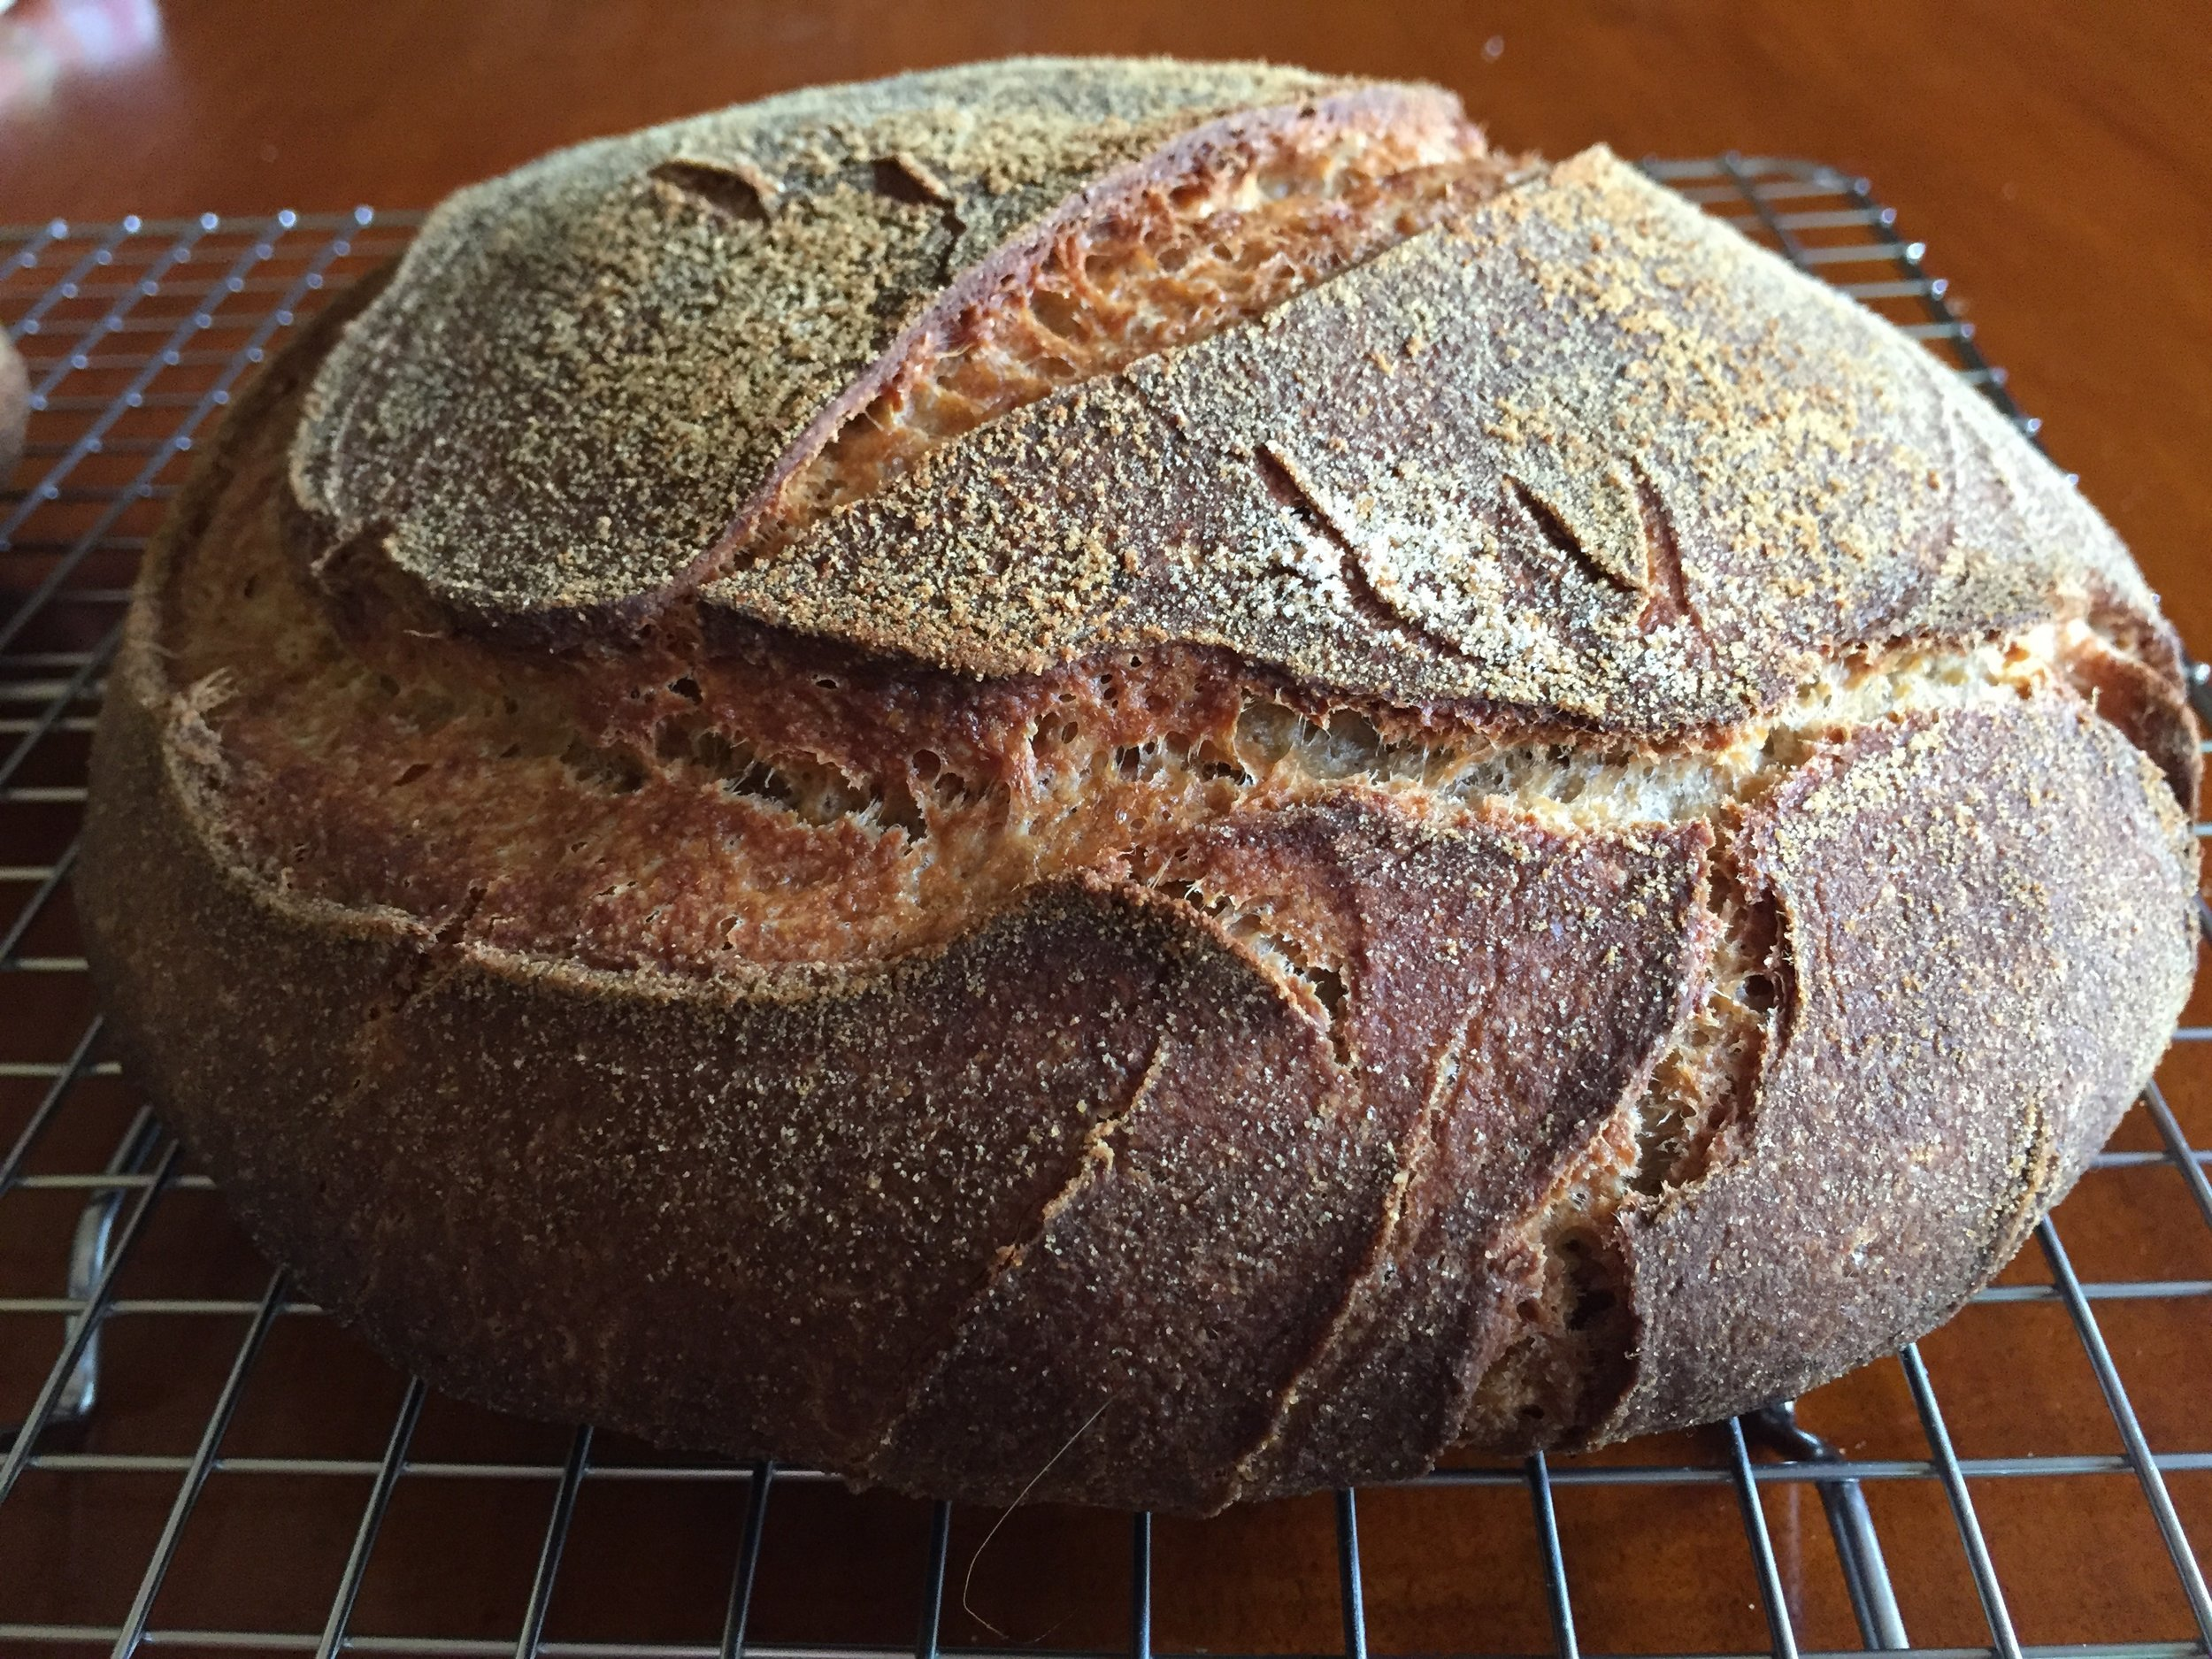 My new bread lame (pronounced 'lahm') did a fine job with the scoring today.